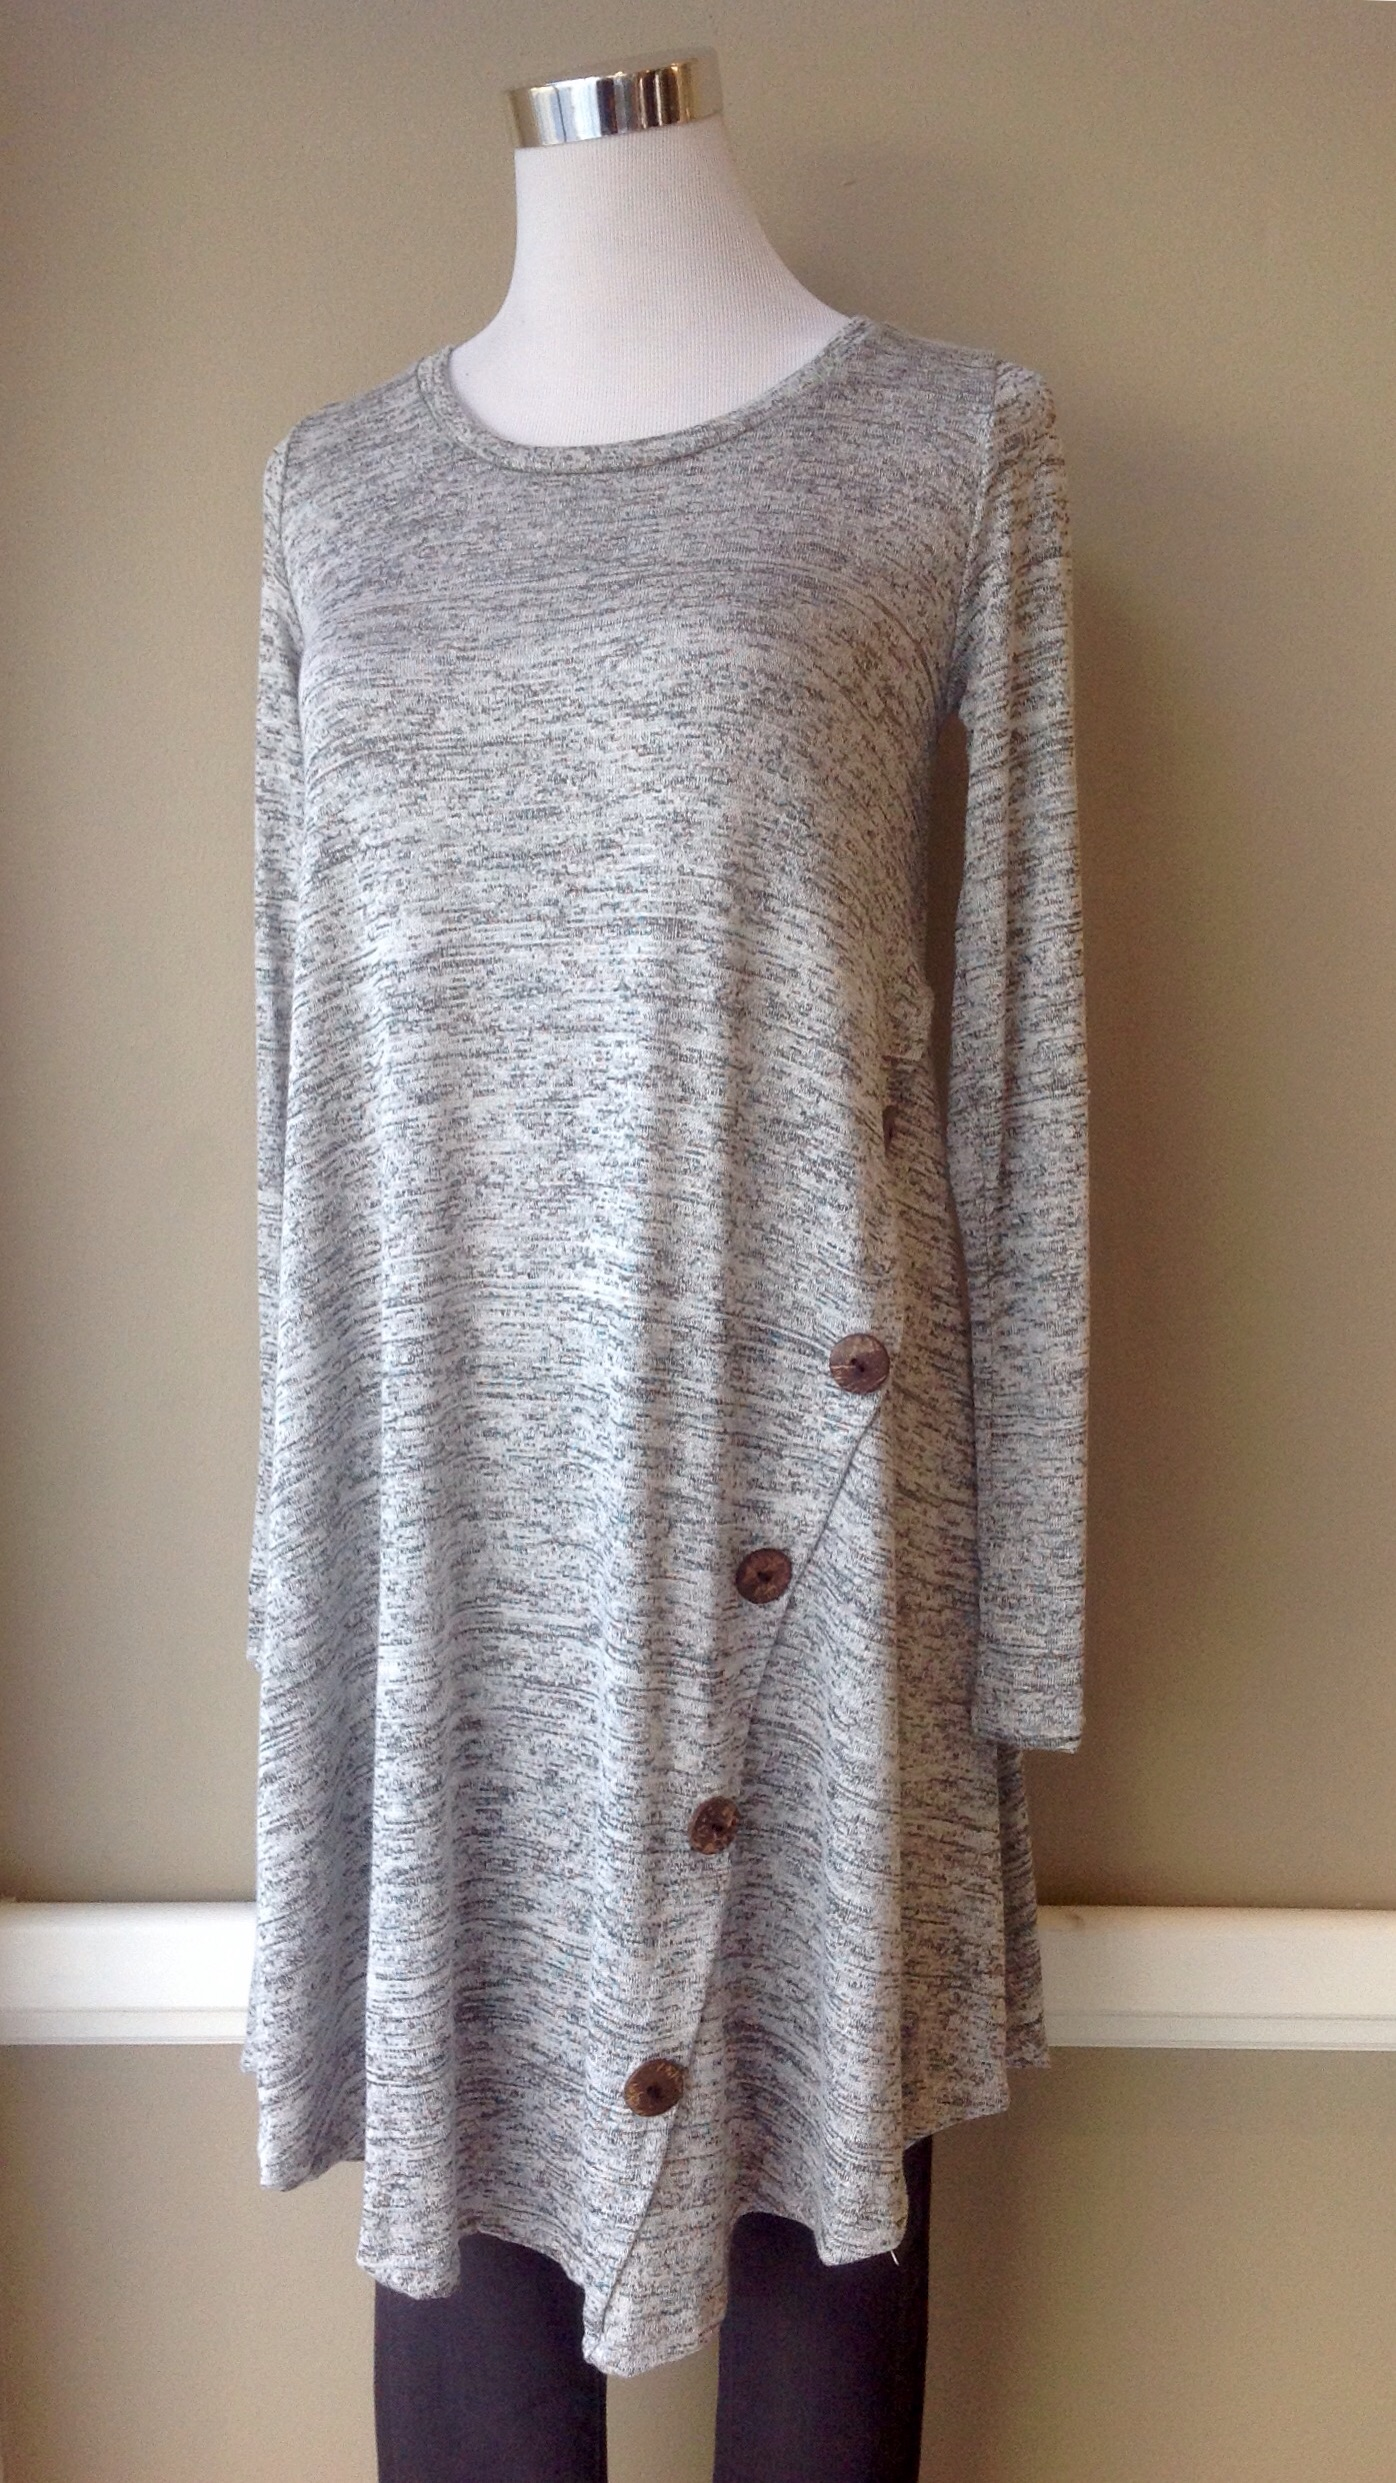 Heather Grey tunic dress with button detail, $35